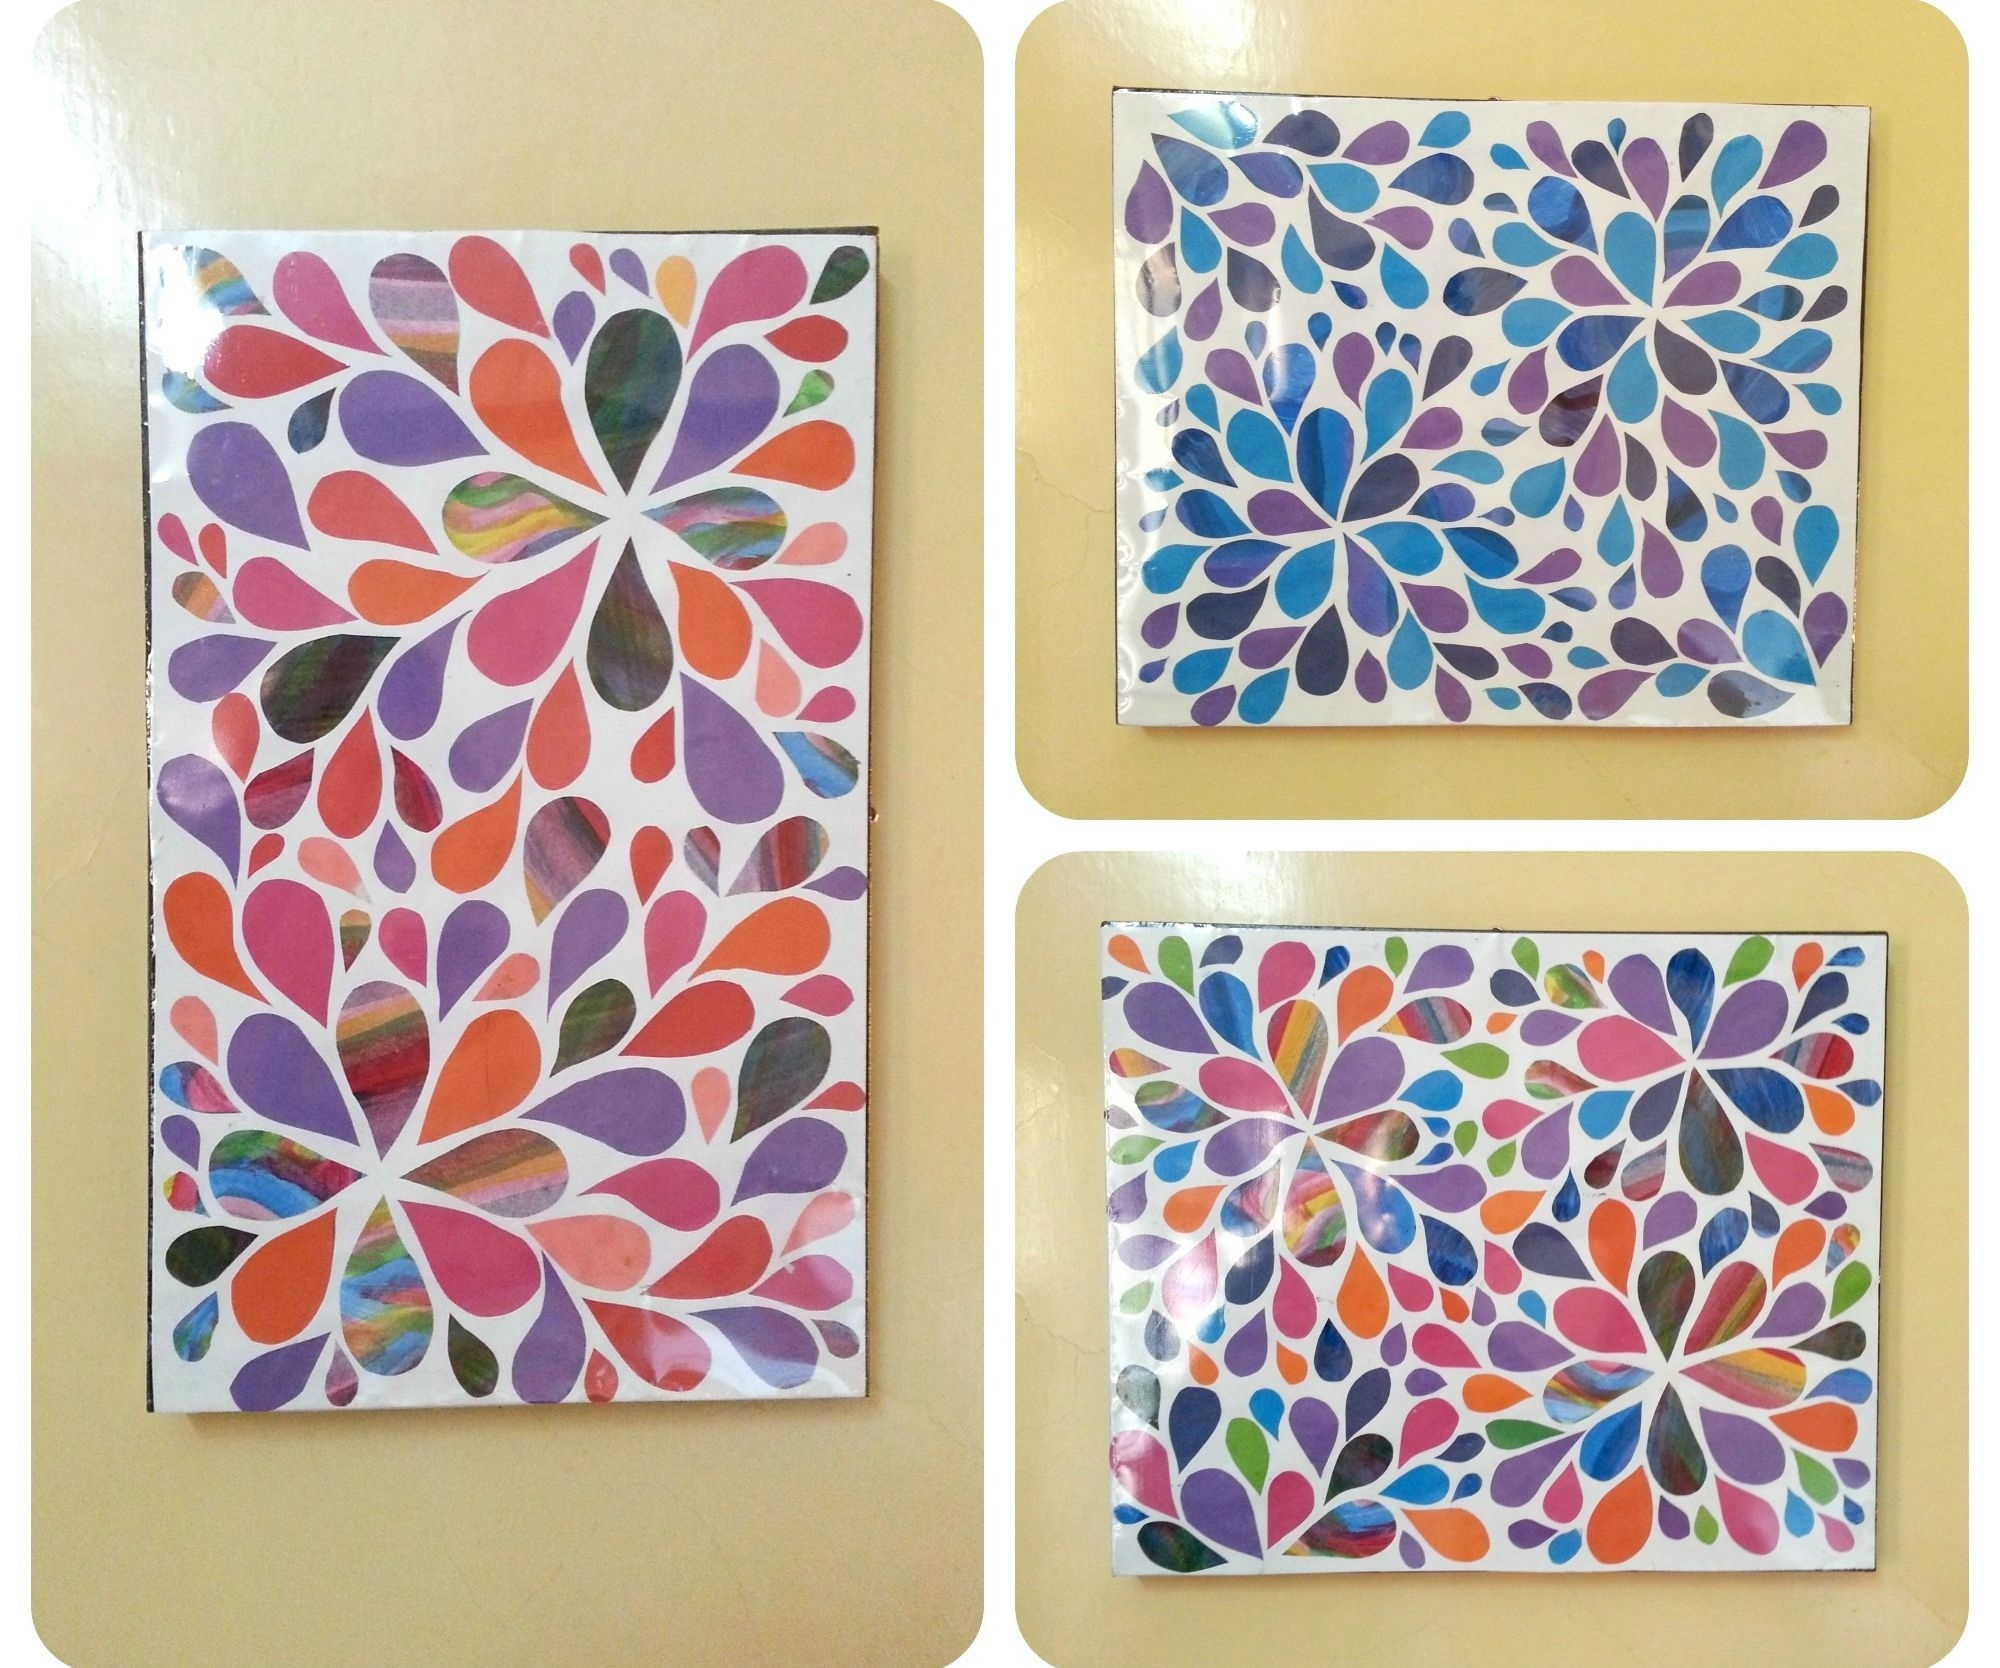 Diy Paper Crafts In Latest Paper Wall Art (View 7 of 20)